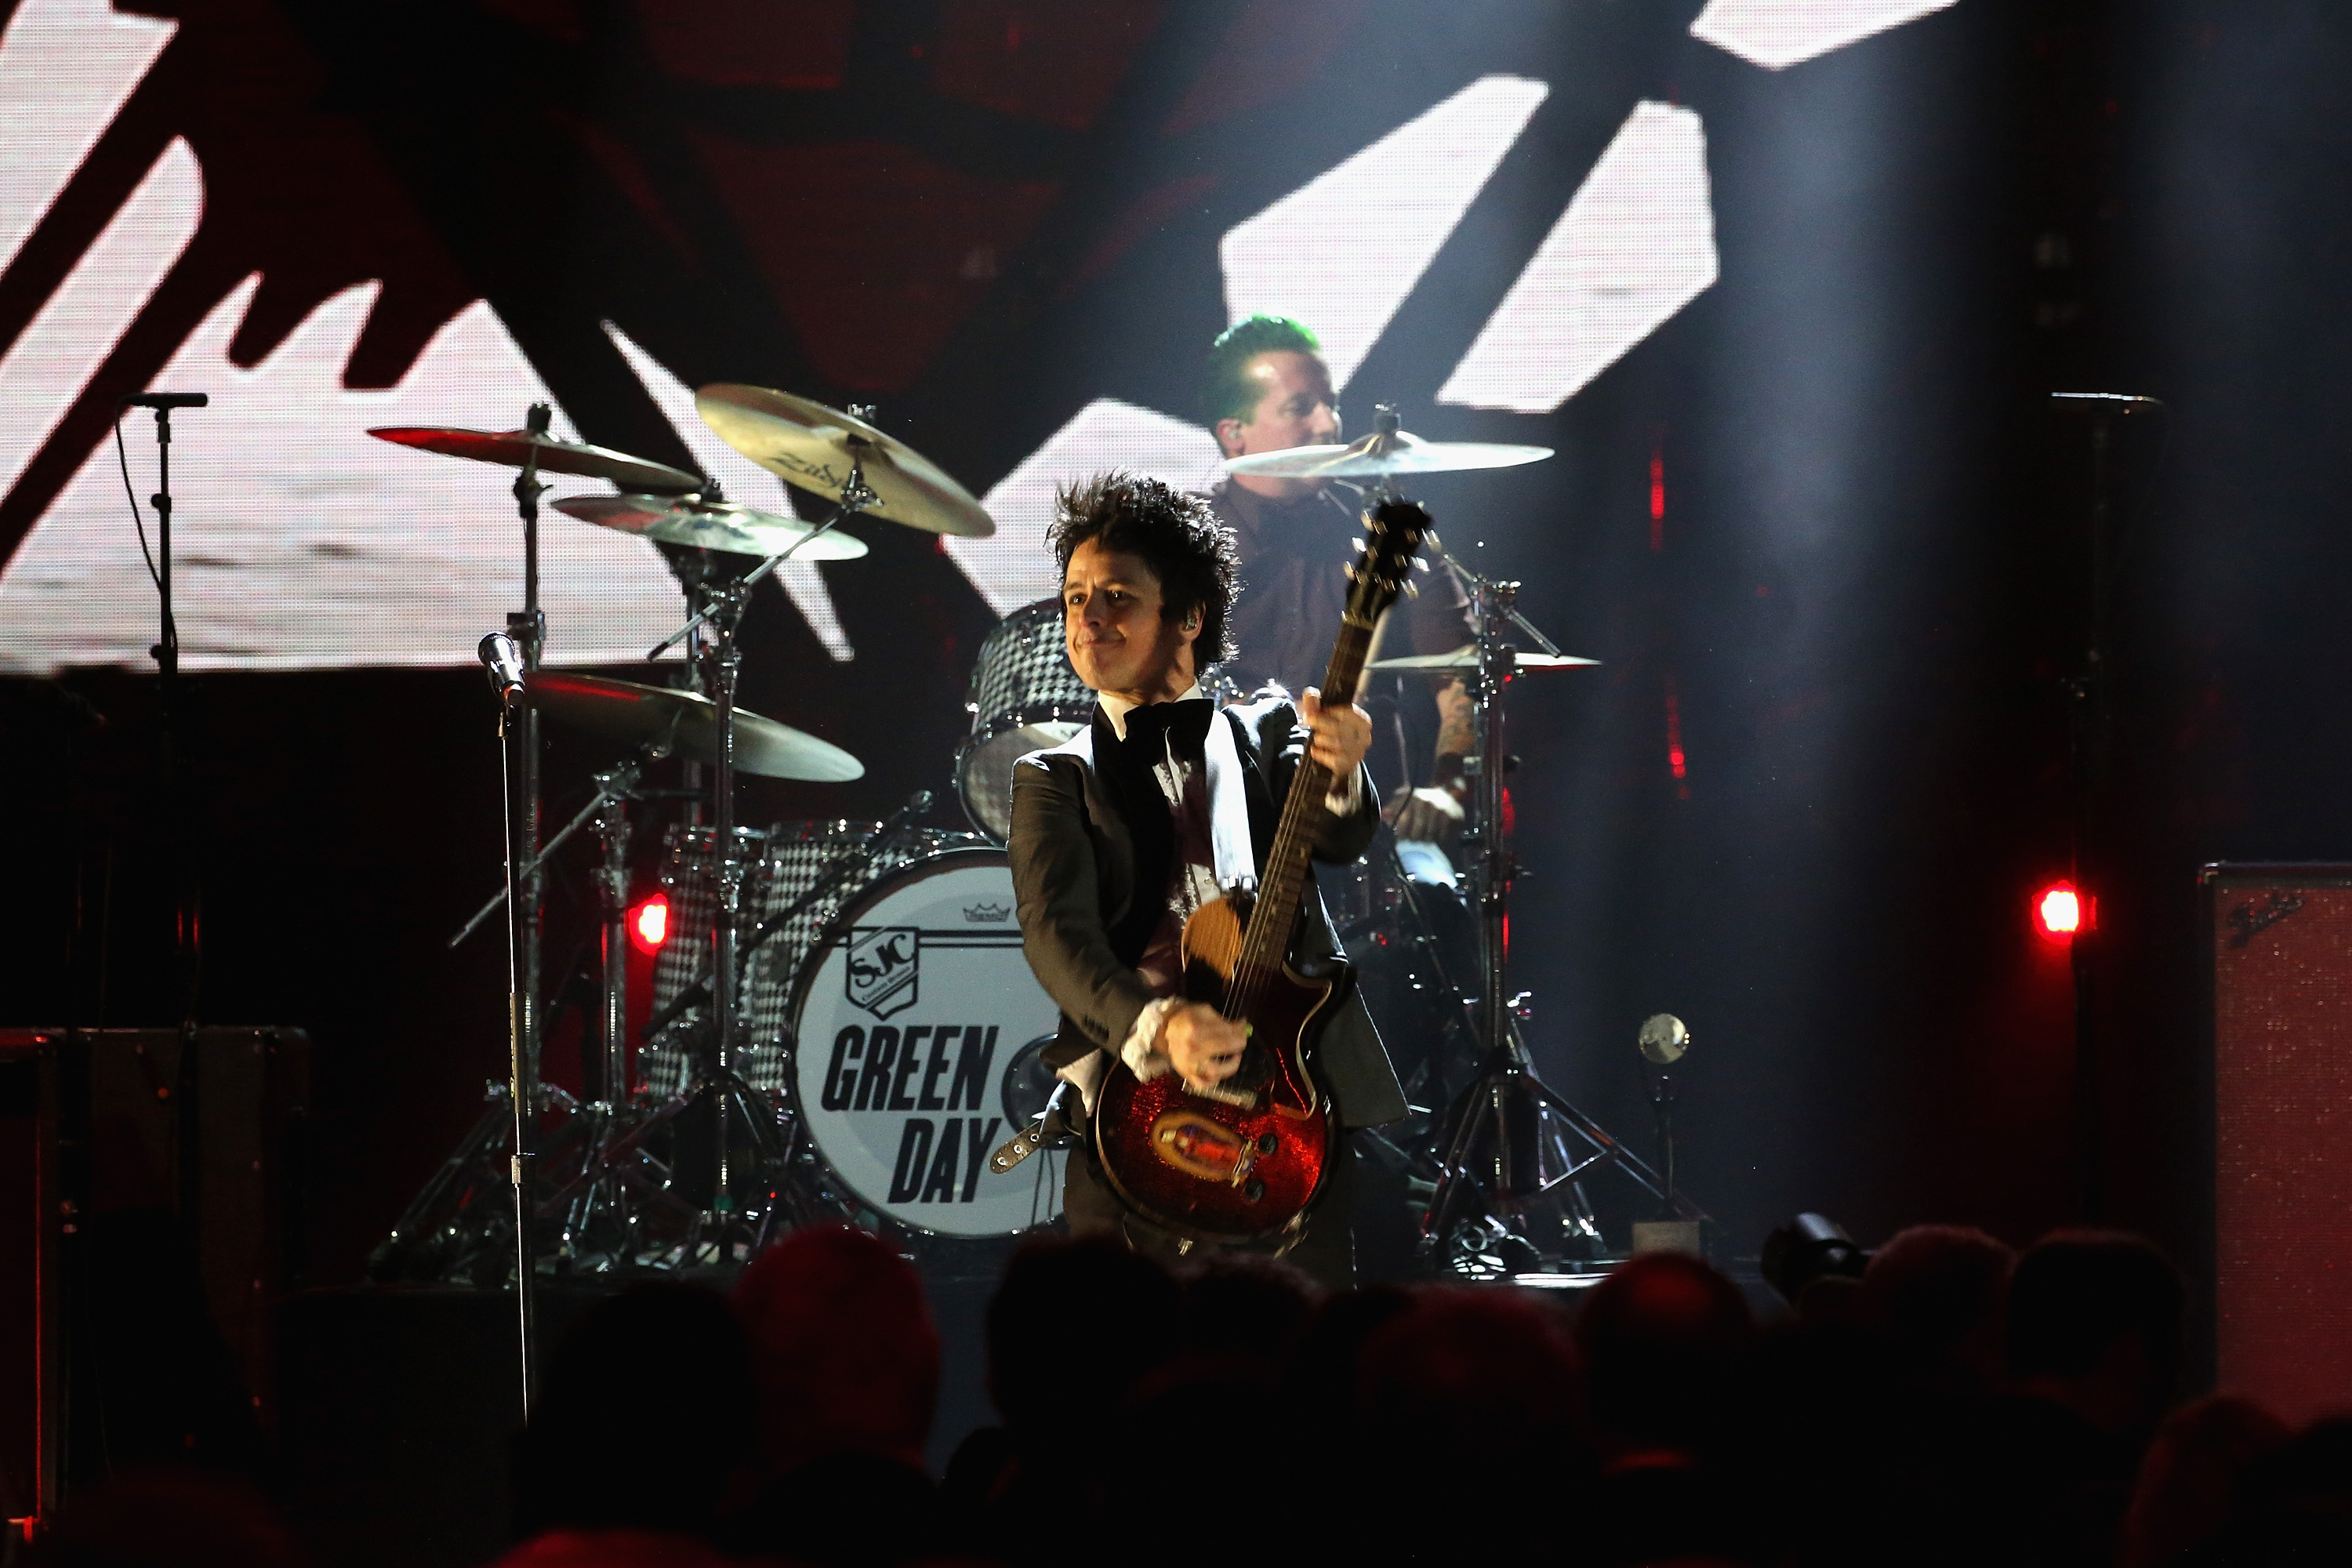 15 Best Moments at the Rock and Roll Hall of Fame 2015 Induction